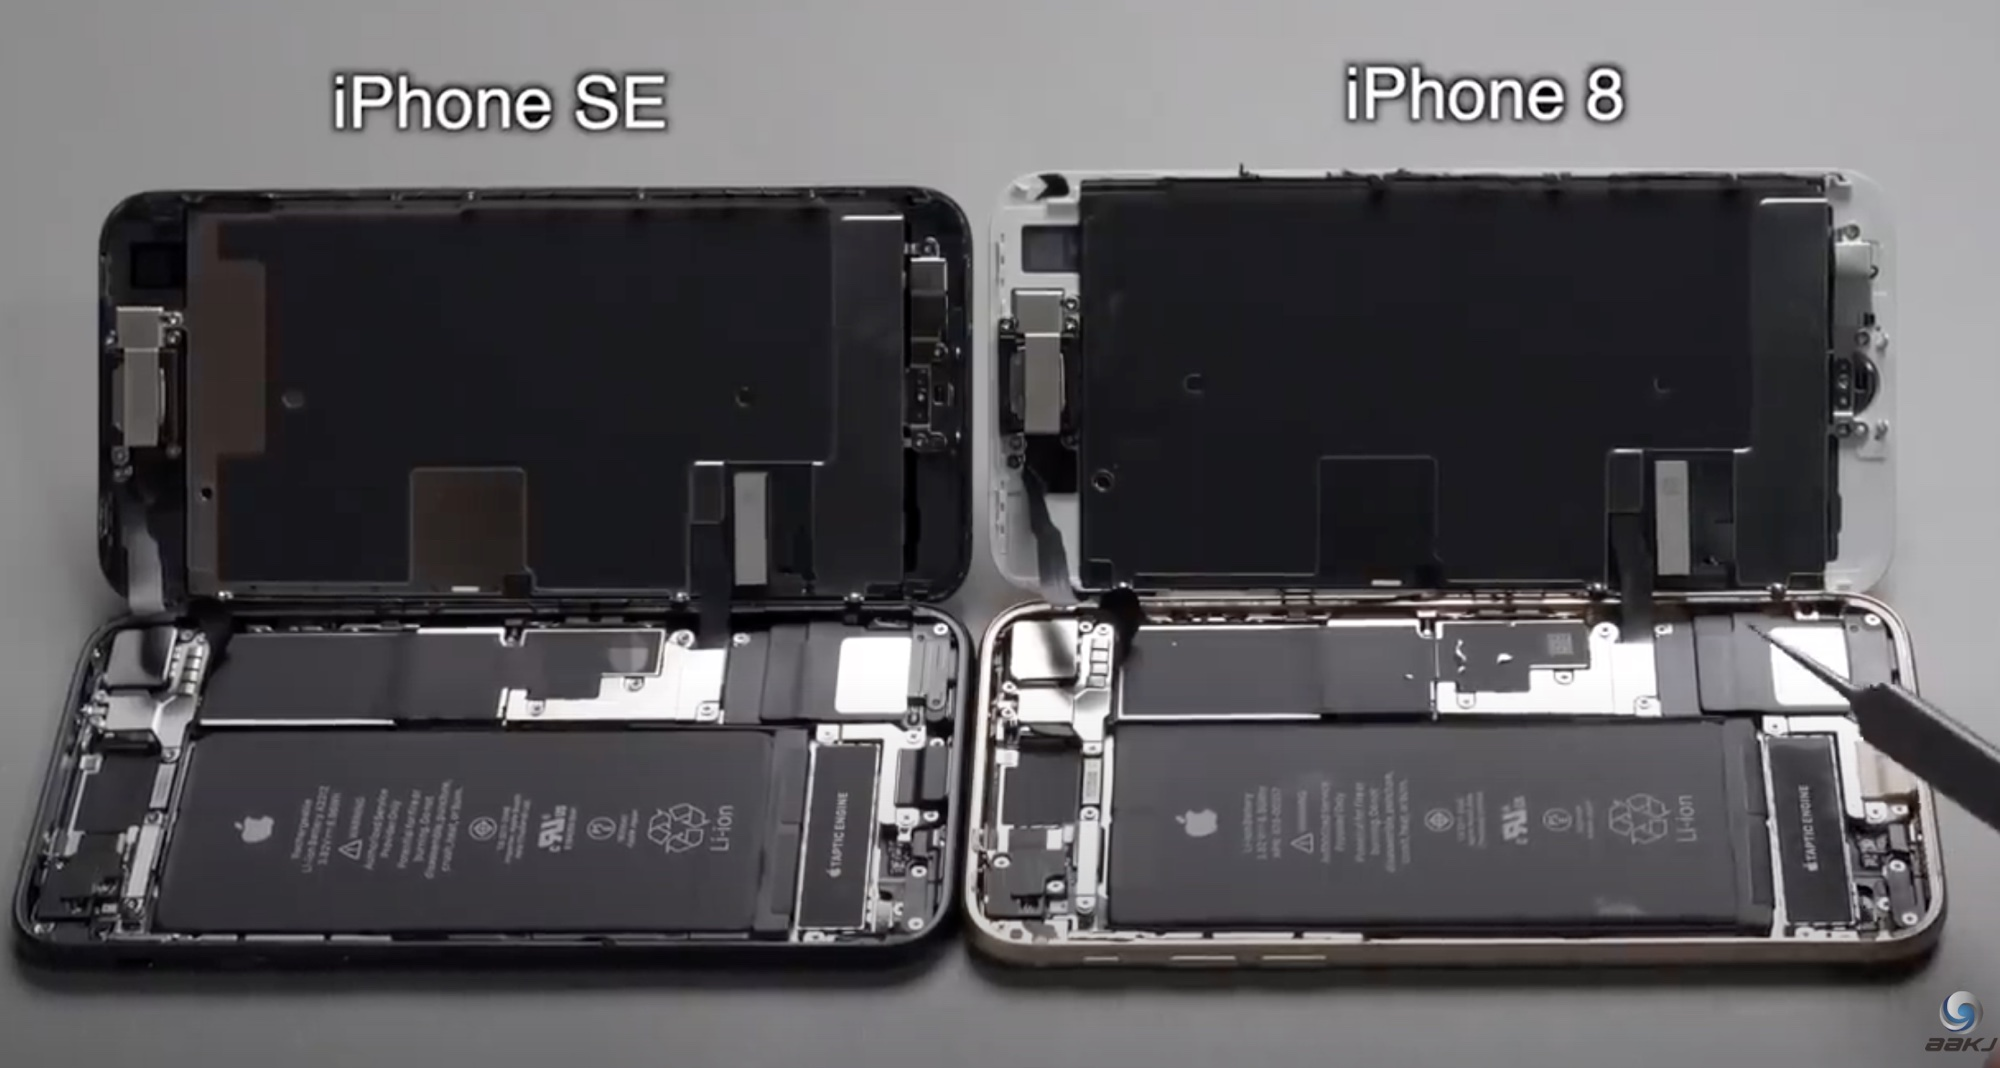 Teardown Video Compares New iPhone SE to iPhone 8 - MacRumors